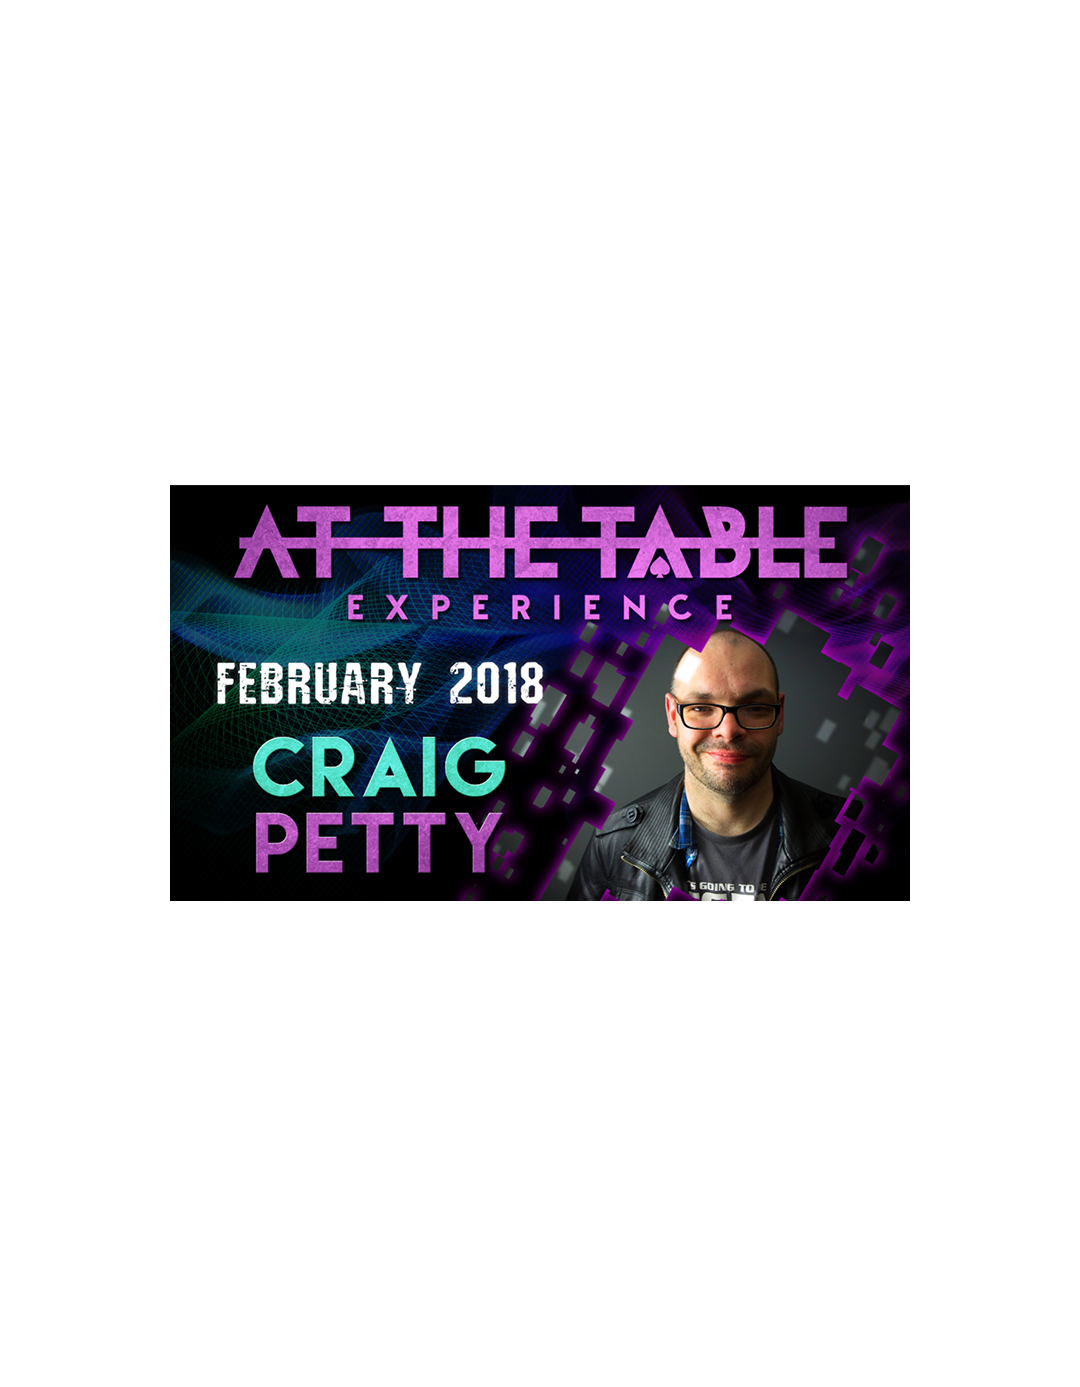 At The Table Live Lecture Craig Petty 7 februarie 2018 - At the table lecture